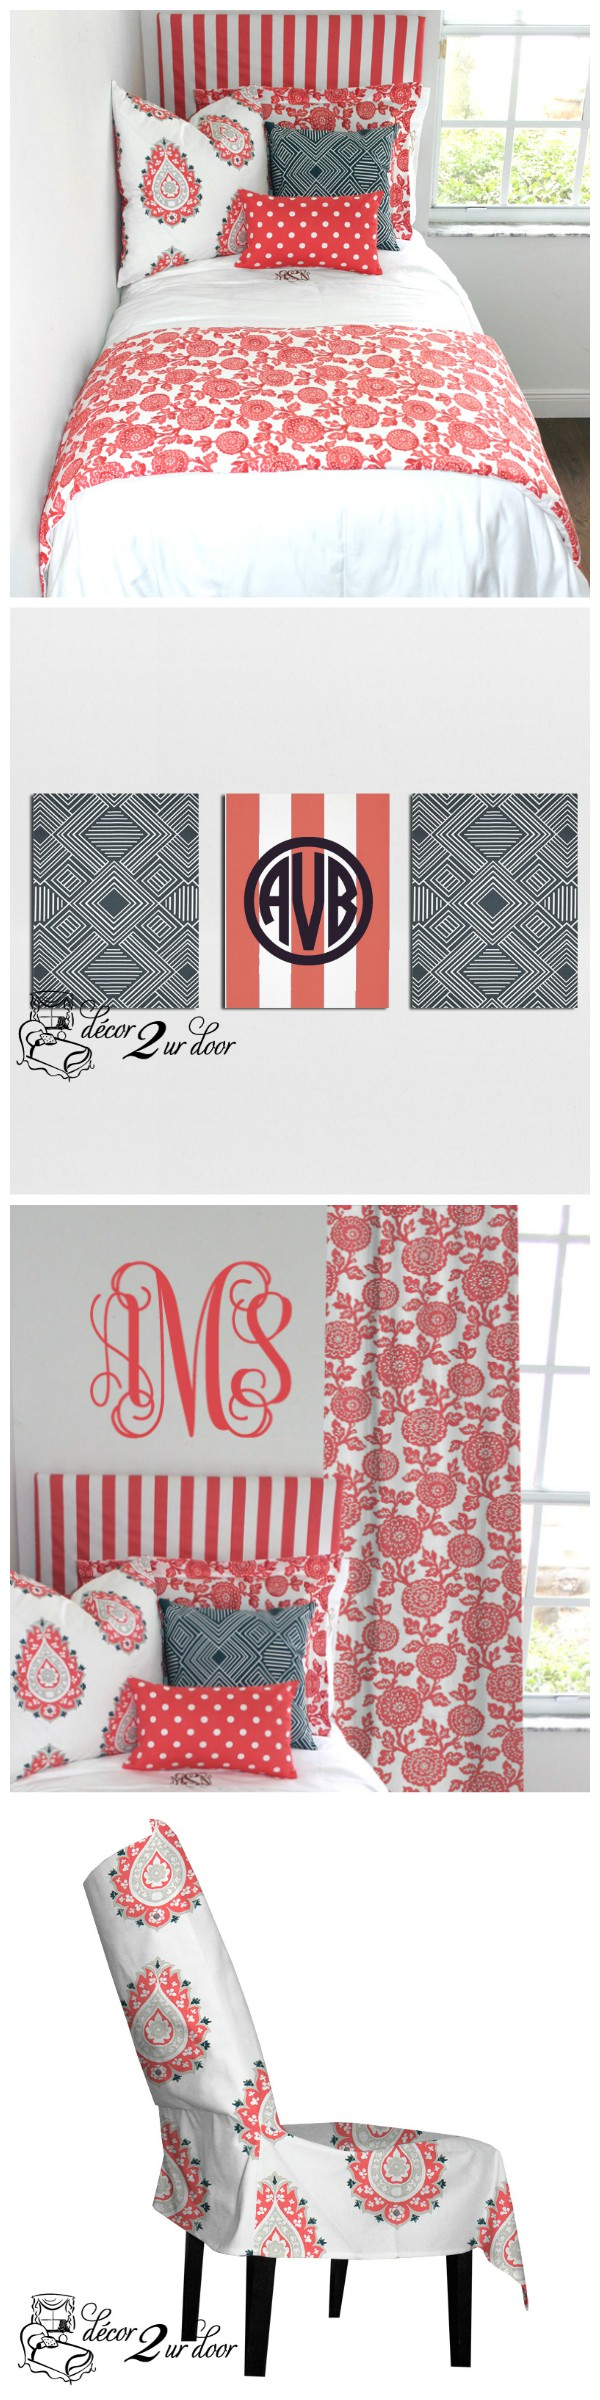 Coral mums bedding and decor designer headboard custom pillows